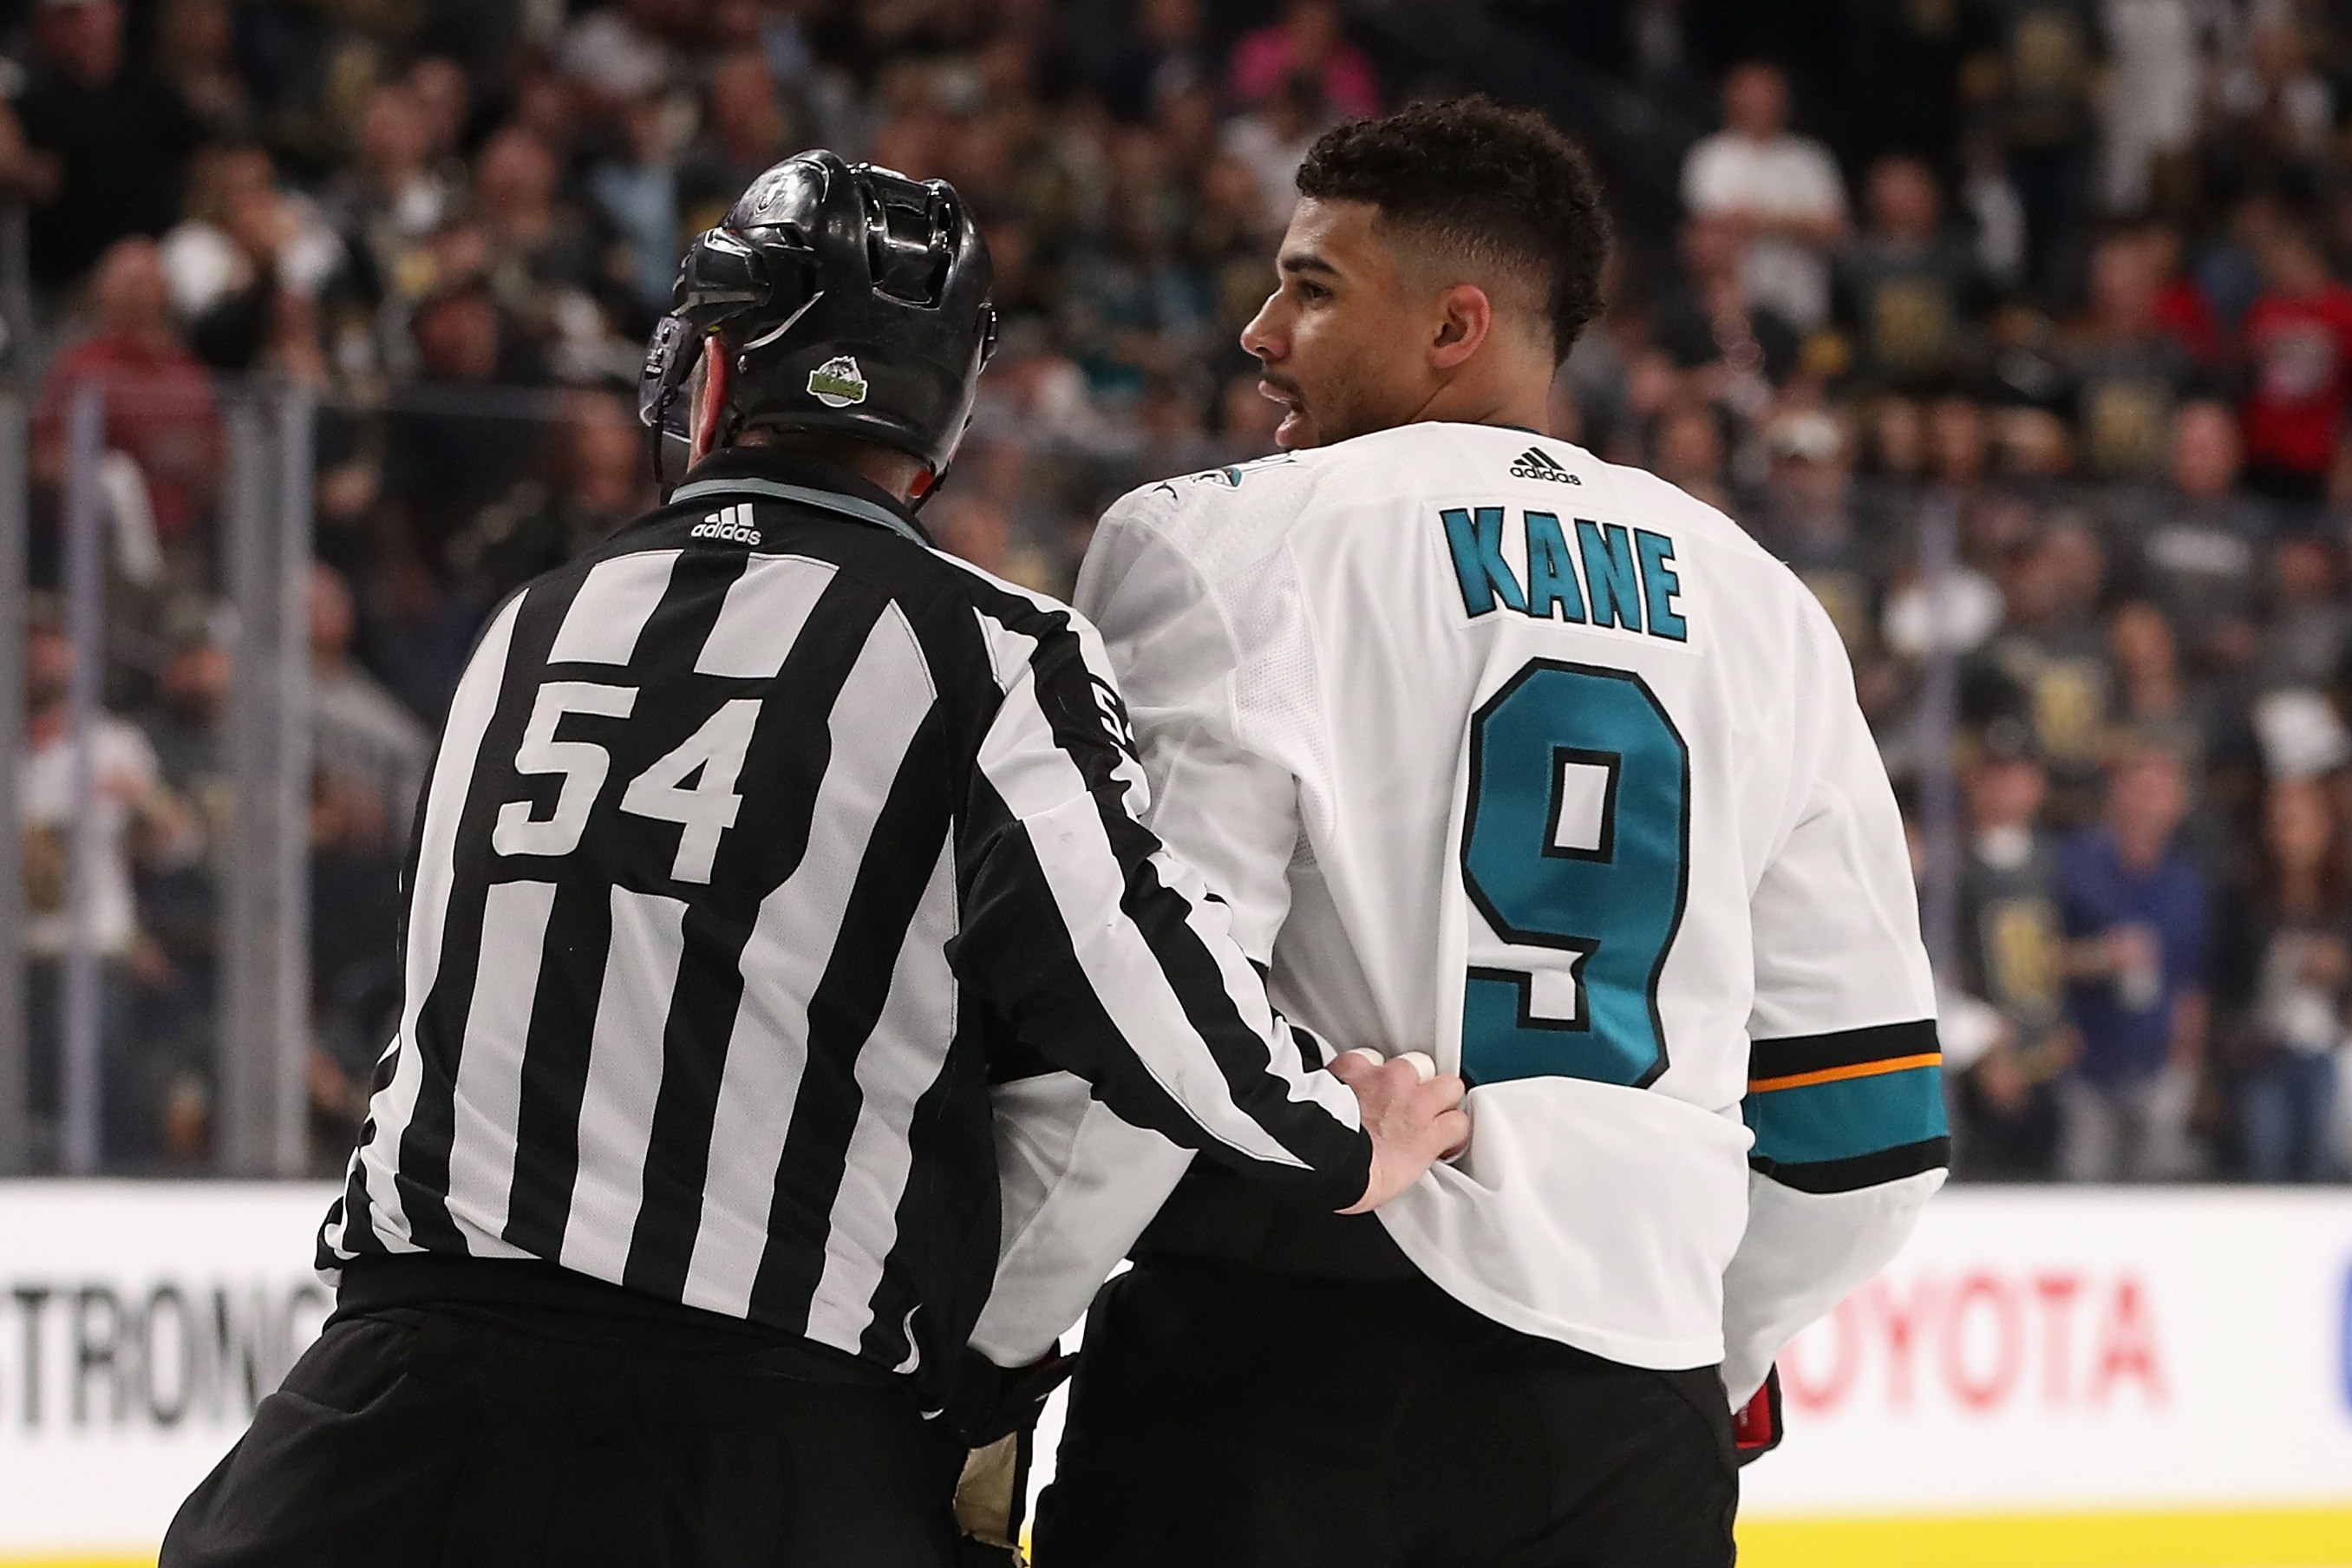 Evander Kane #9 of the San Jose Sharks is escorted off the ice by linesman Greg Devorski #54 after a 5 minute major penalty and game misconduct in the third period Game One of the Western Conference Second Round against the Vegas Golden Knights during the